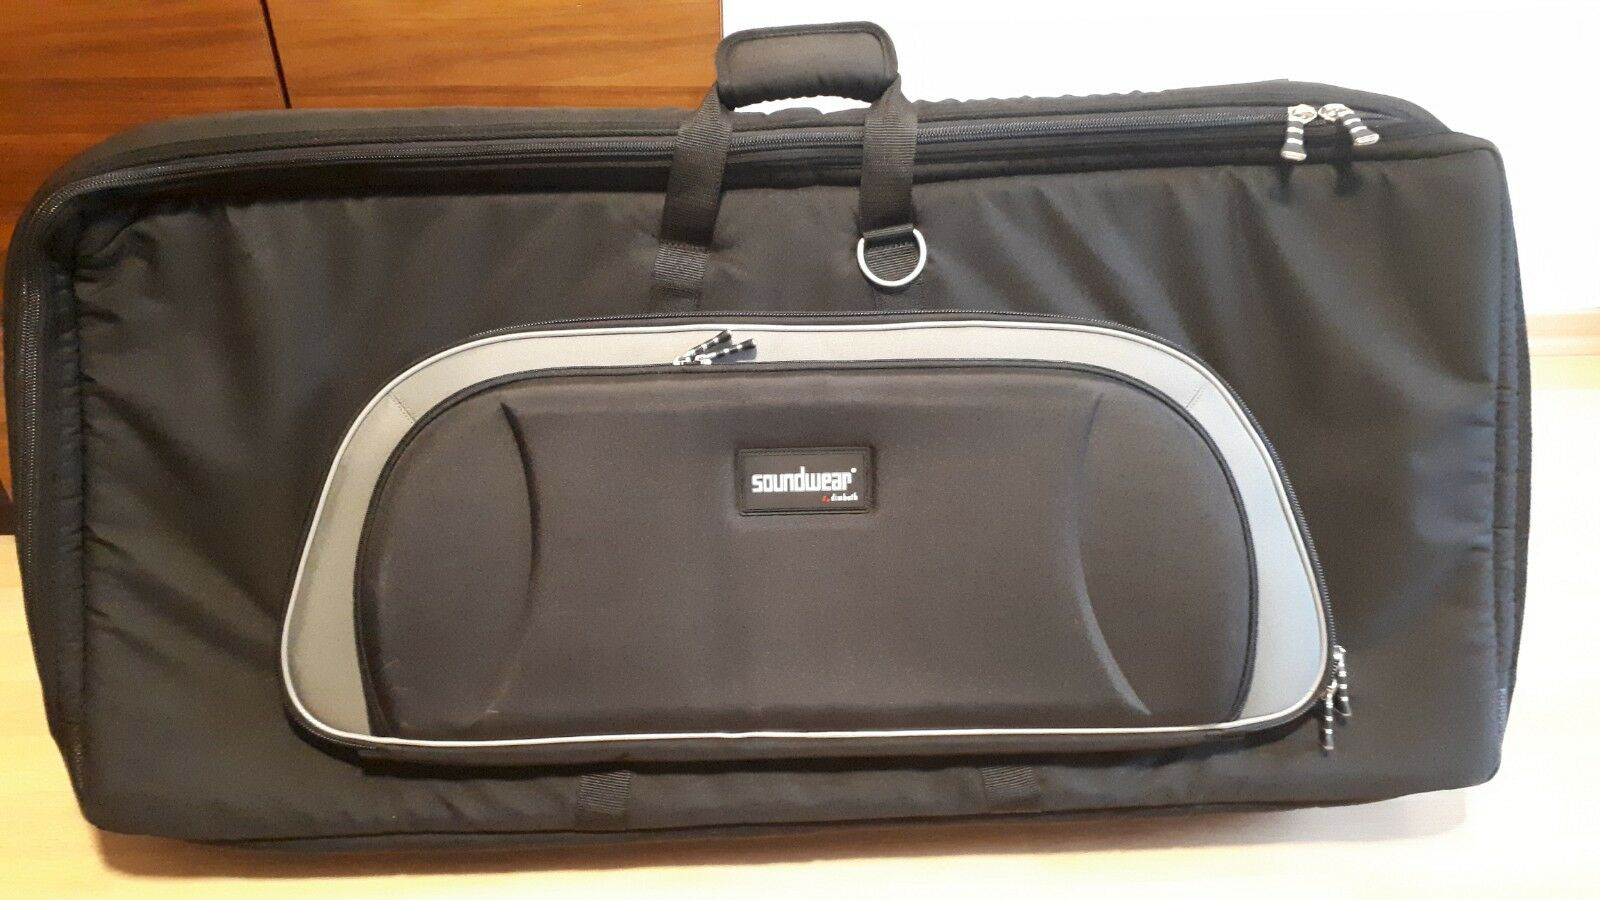 Soundwear Keyboardtasche - Stagebag PSR-S